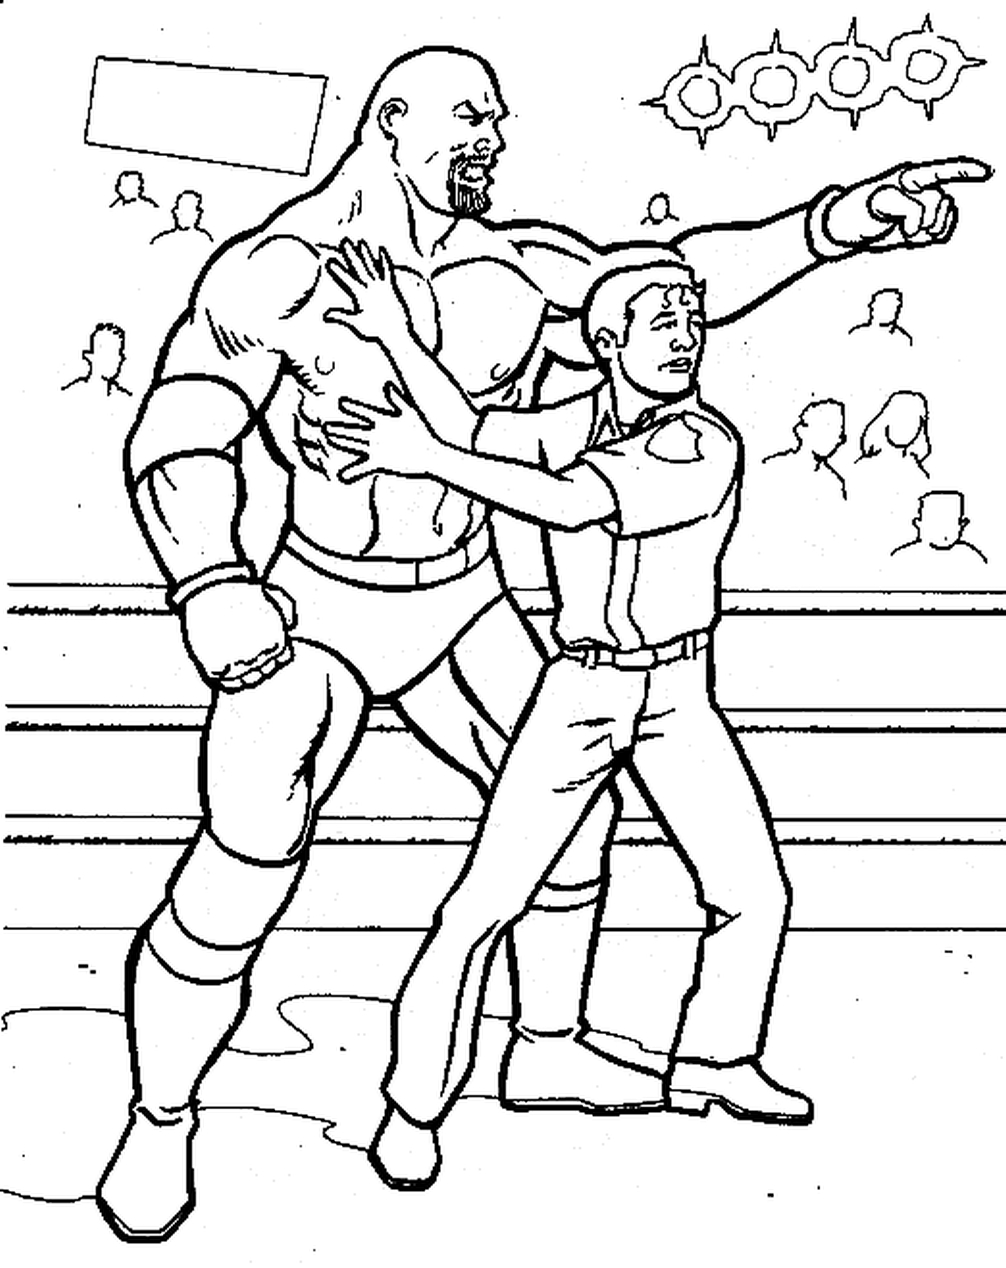 coloring pages wwe wwe john cena coloring pages coloring home coloring wwe pages